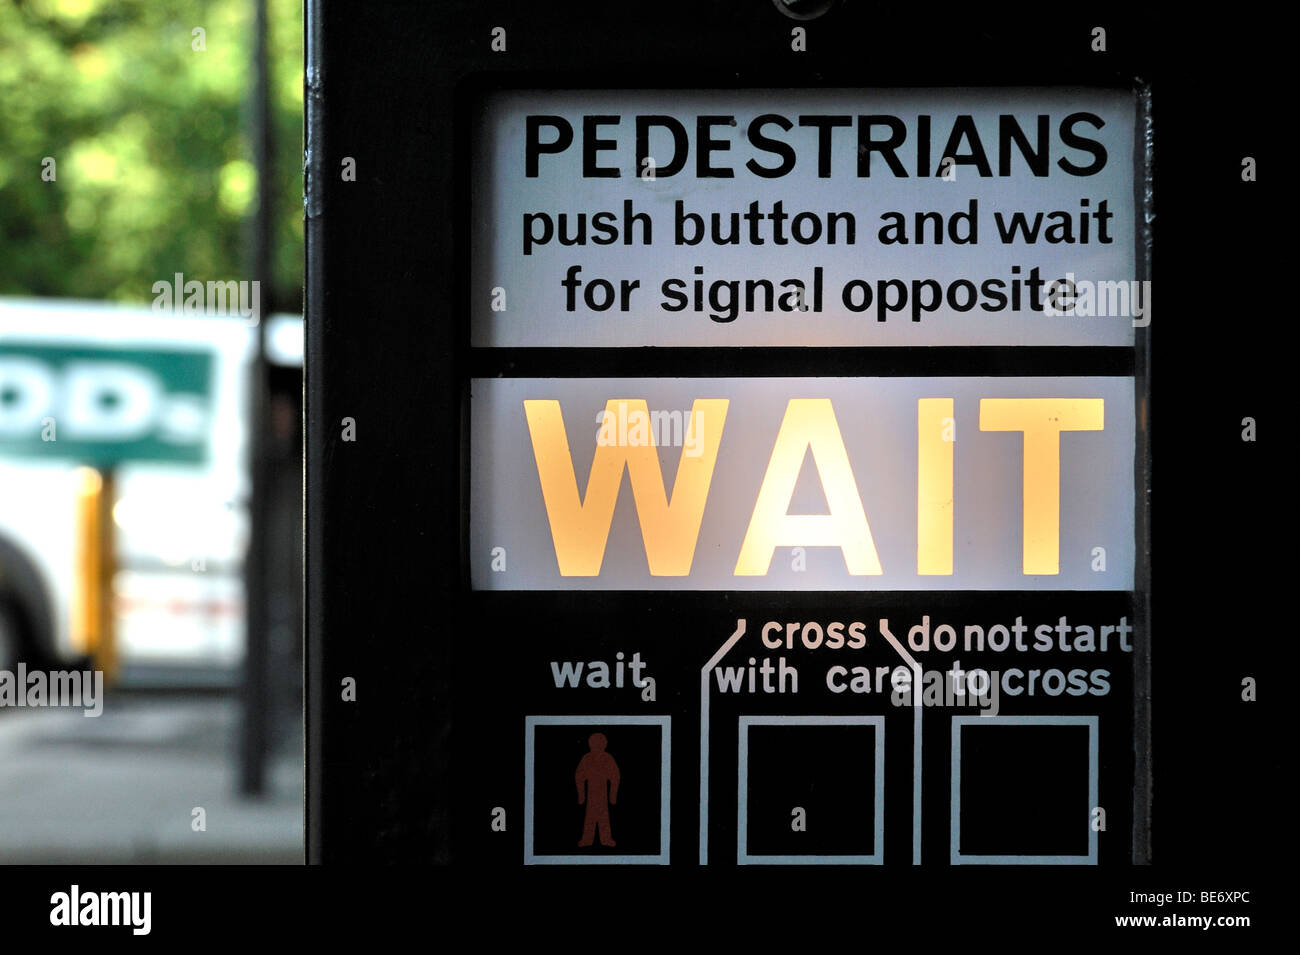 Operating instructions of a pedestrian crossing in London, England, United Kingdom, Europe - Stock Image